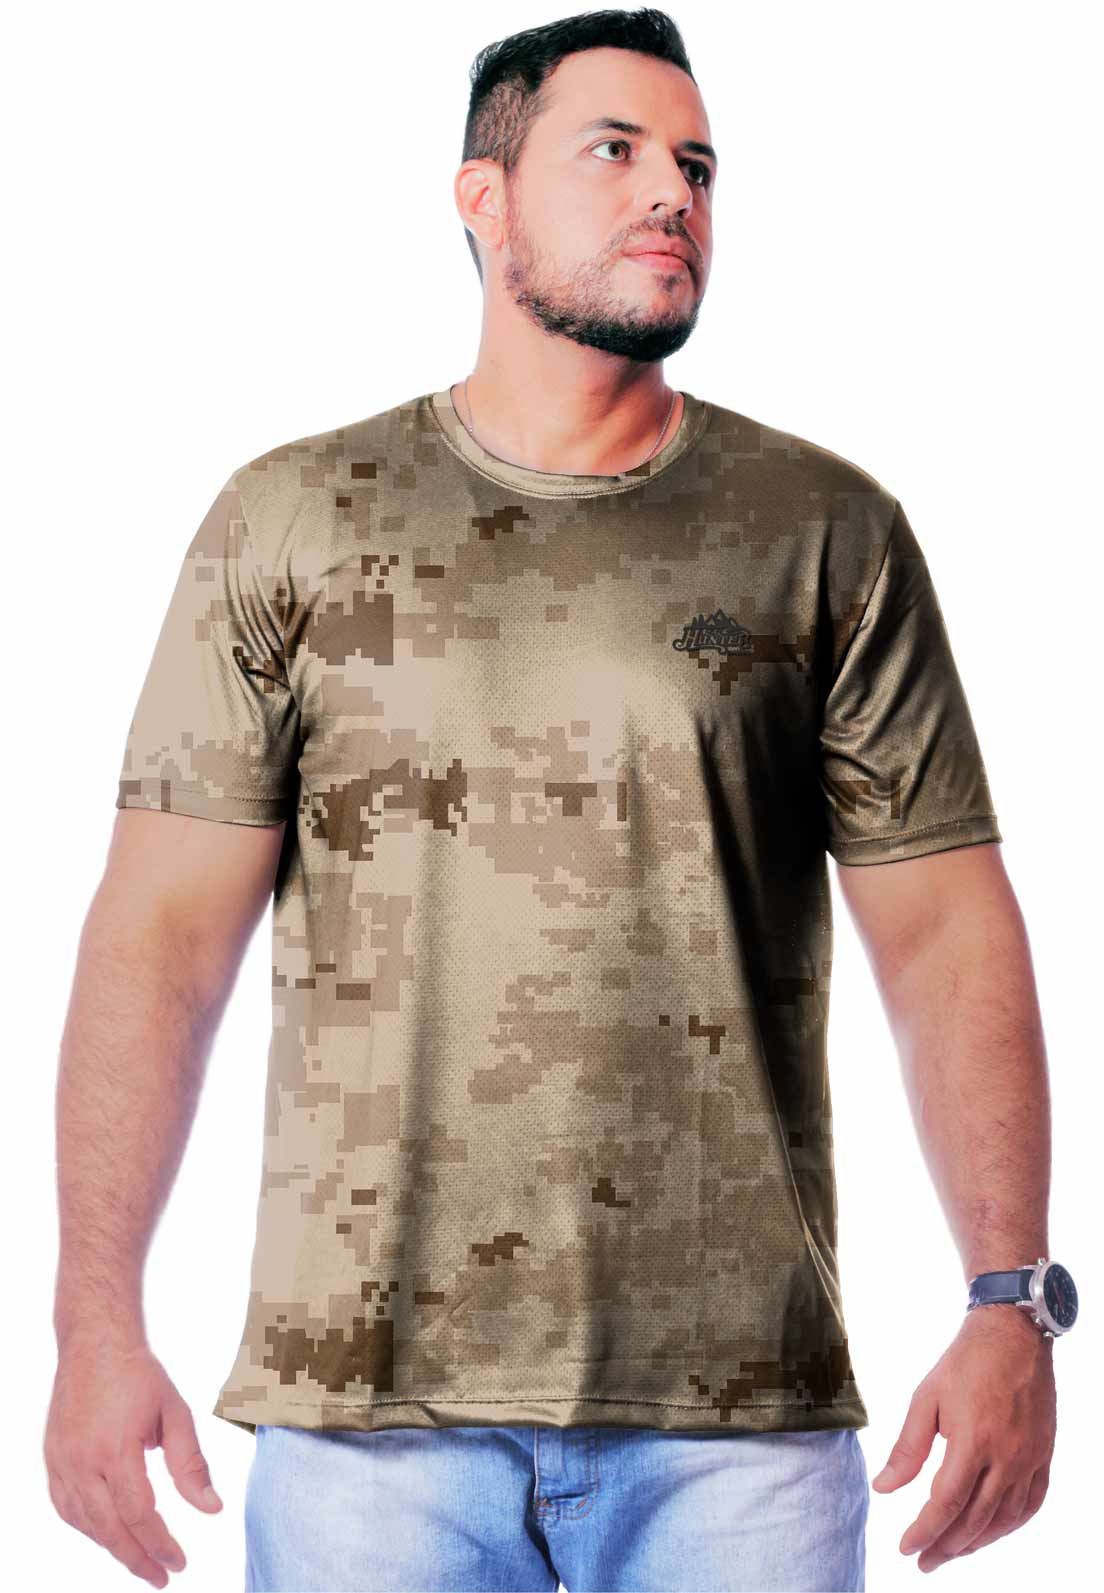 CAMISETA CAMUFLADA DIGITAL DESERTO MANGA CURTA MASCULINA  - REAL HUNTER OUTDOORS